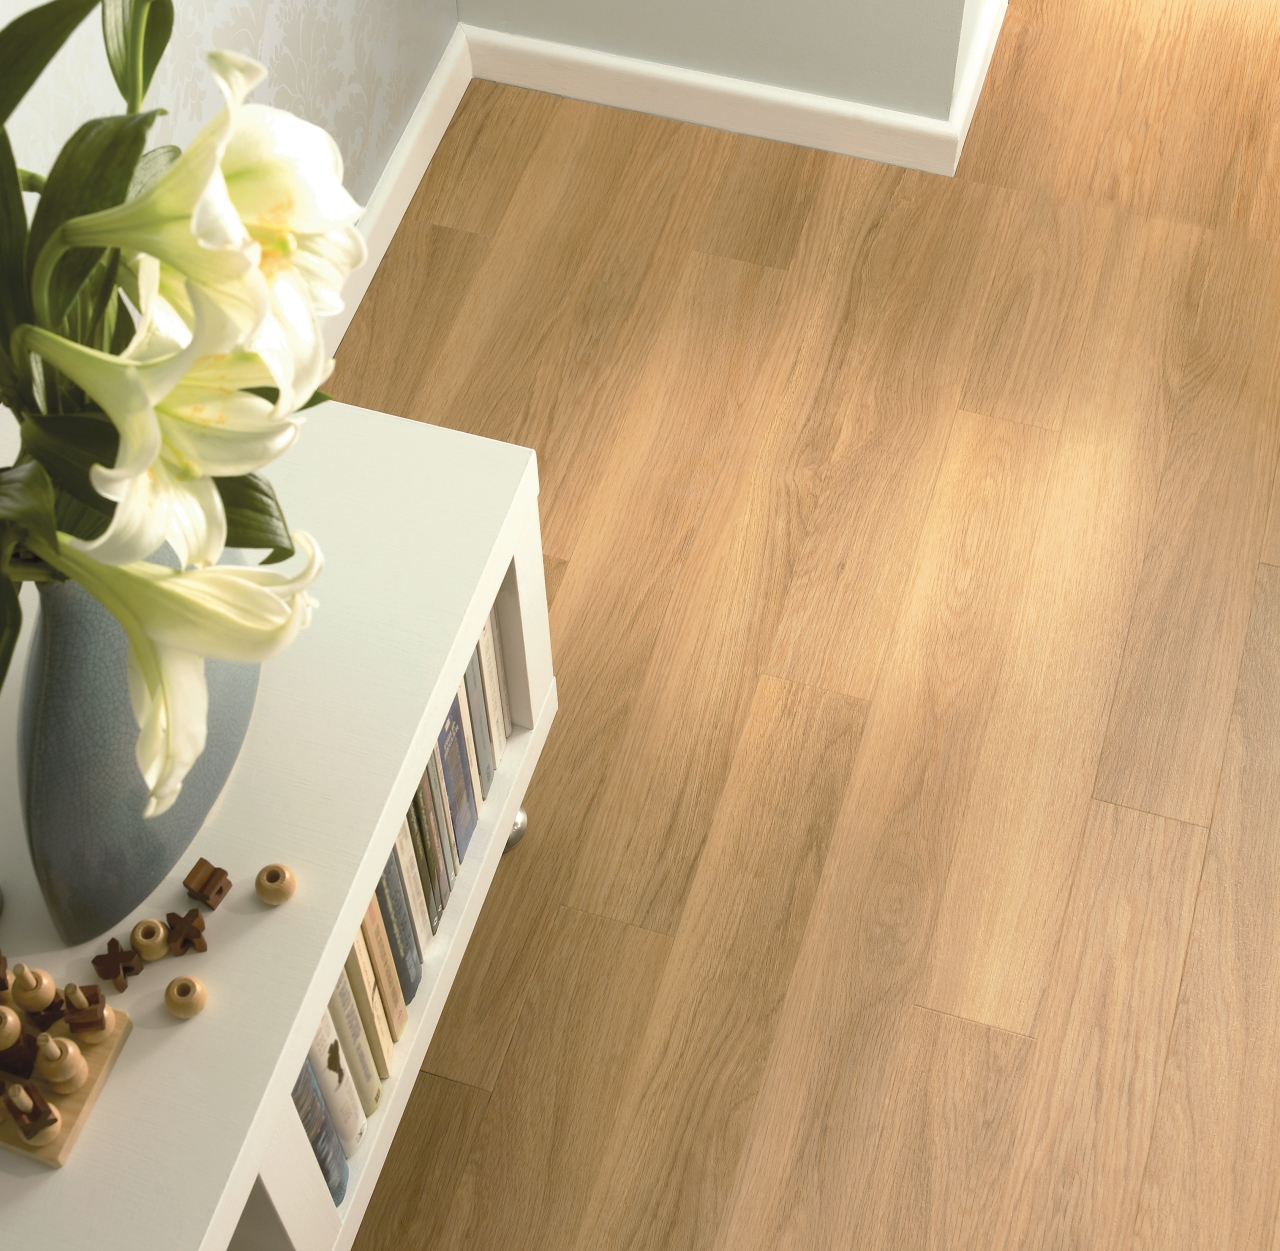 Amtico Kitchen Flooring Honey Oak Beautifully Designed Lvt Flooring From The Amtico